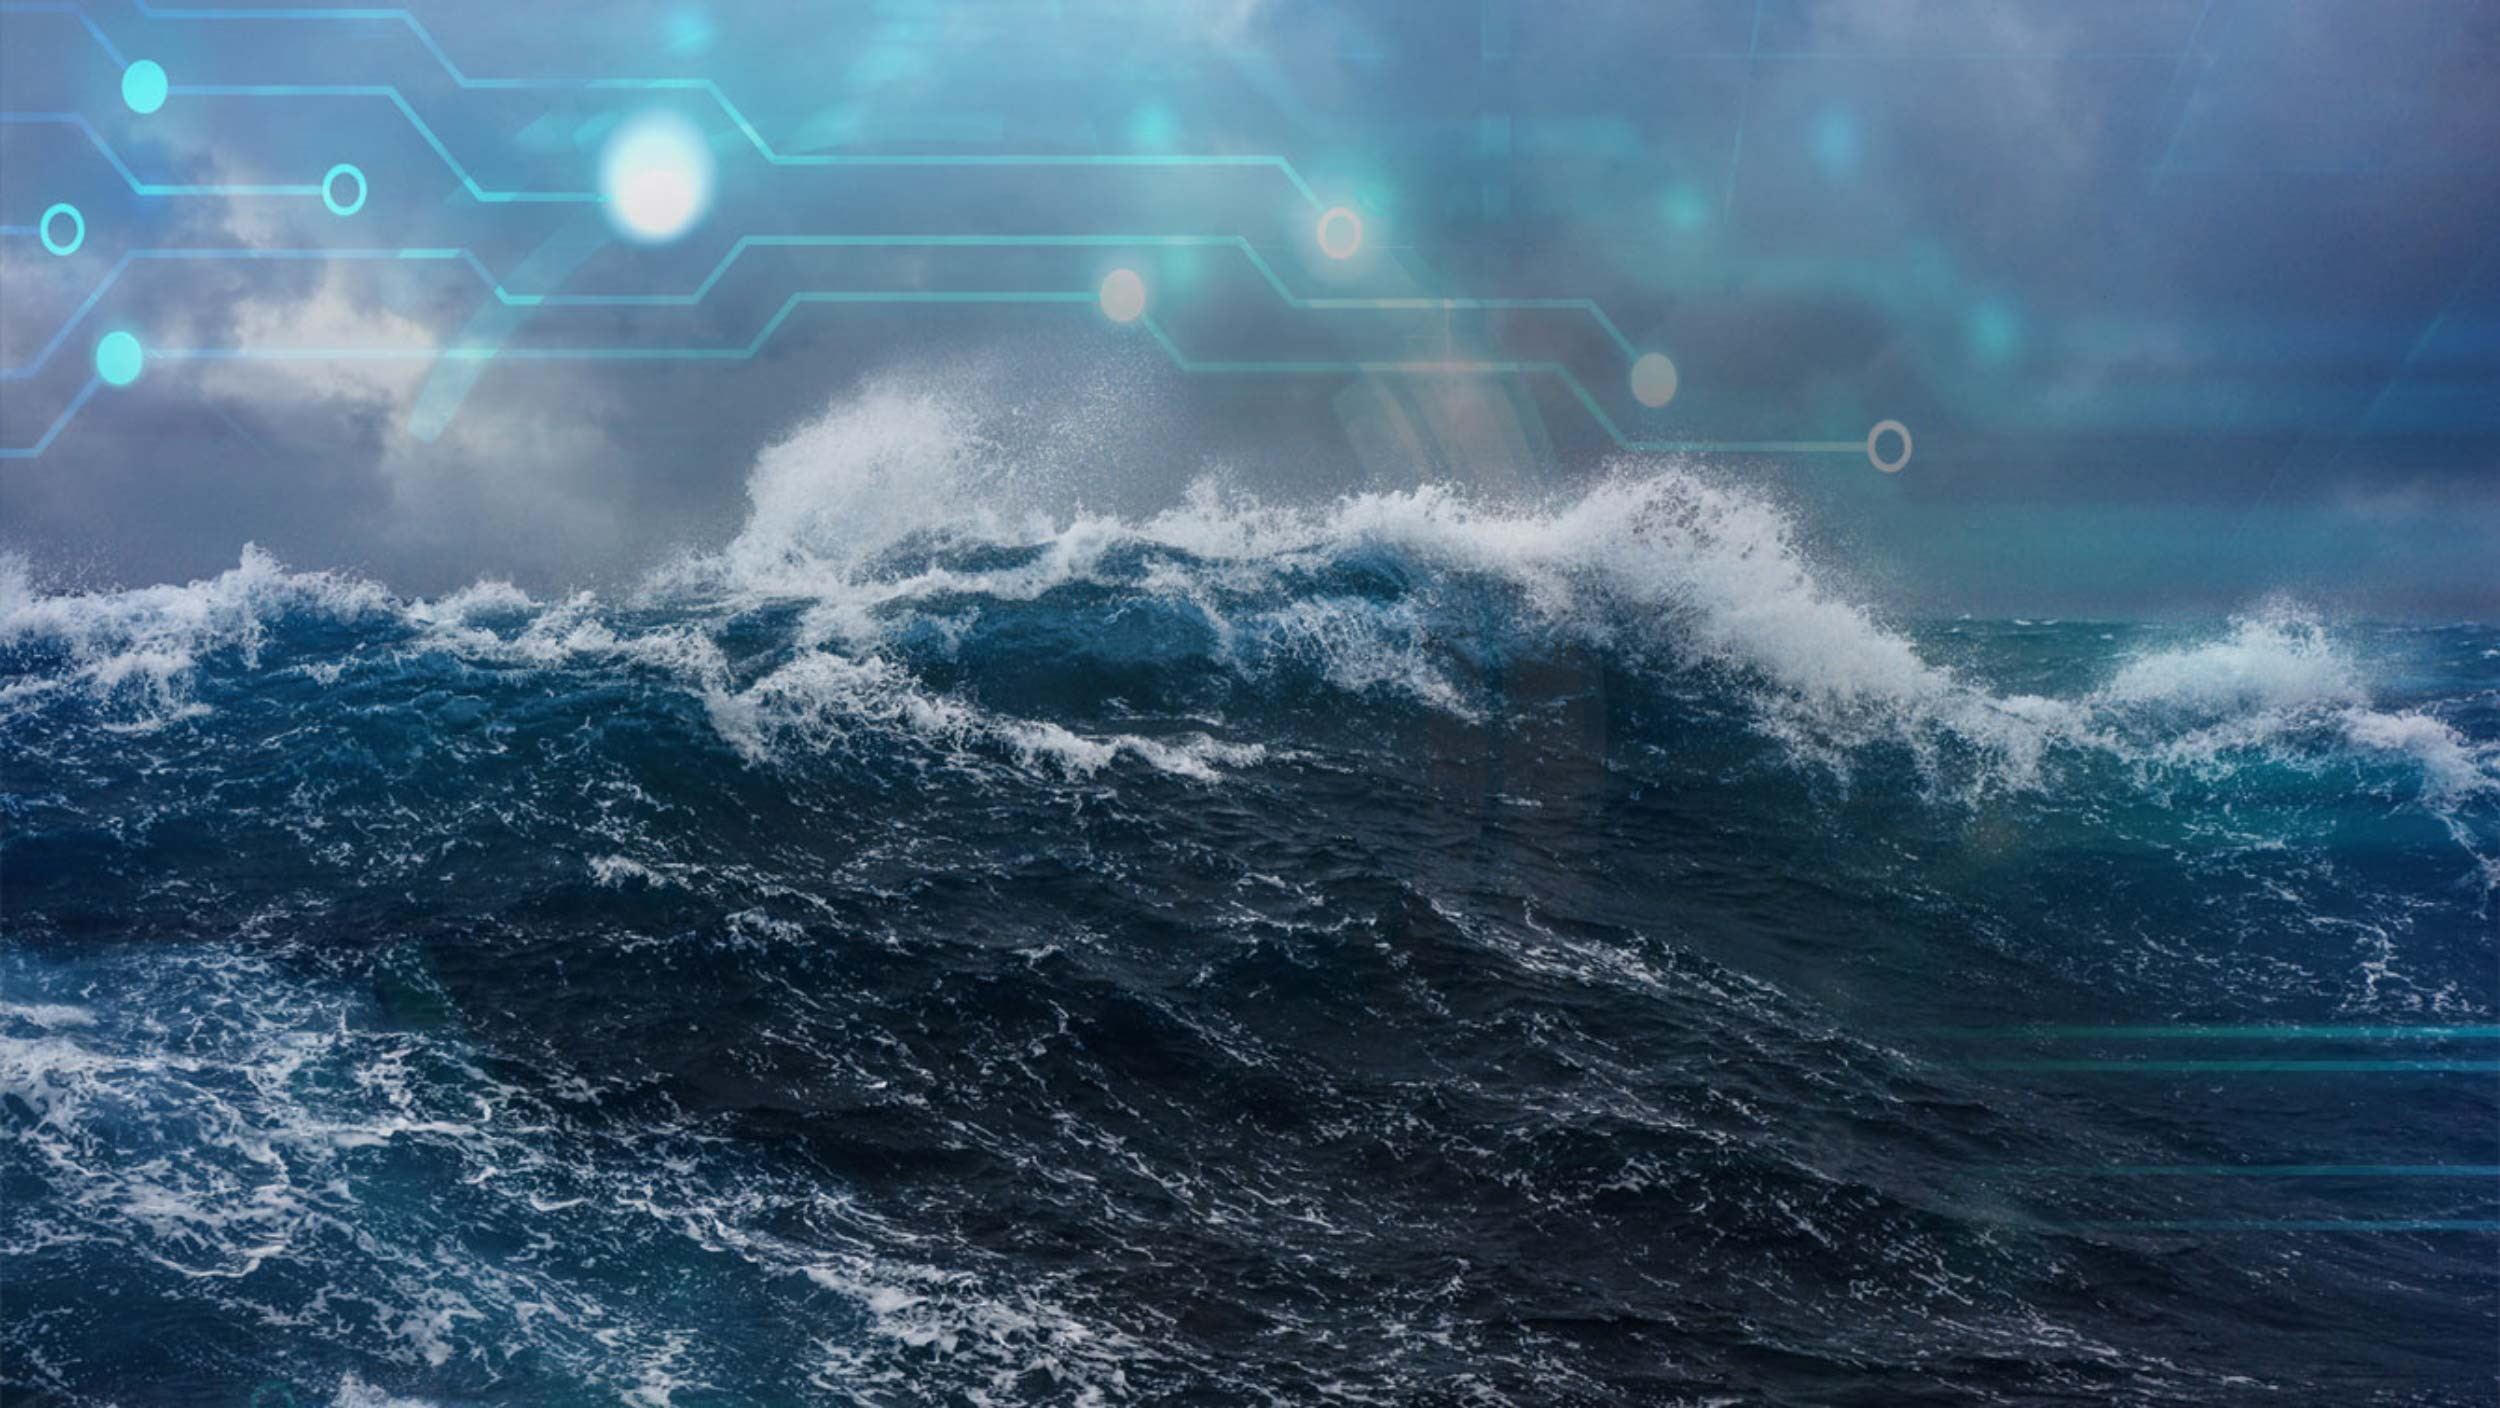 wave on stormy sea with extronic graphics overlay